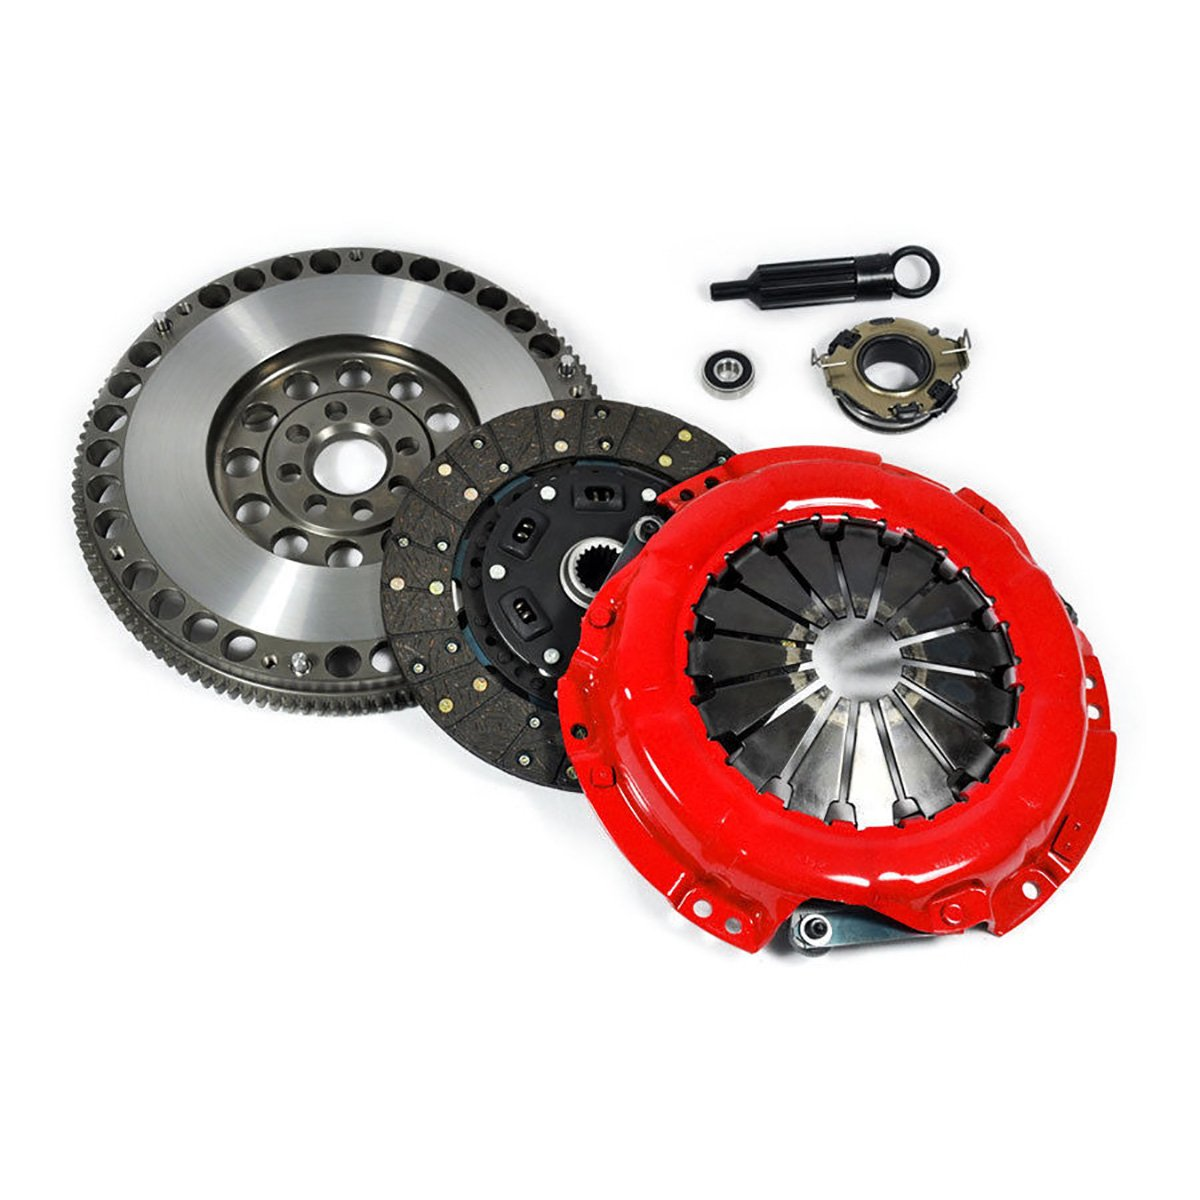 EFT STAGE 2 CLUTCH KIT+FORGED RACE FLYWHEEL CELICA ALL-TRAC MR2 2.0L TURBO 3SGTE